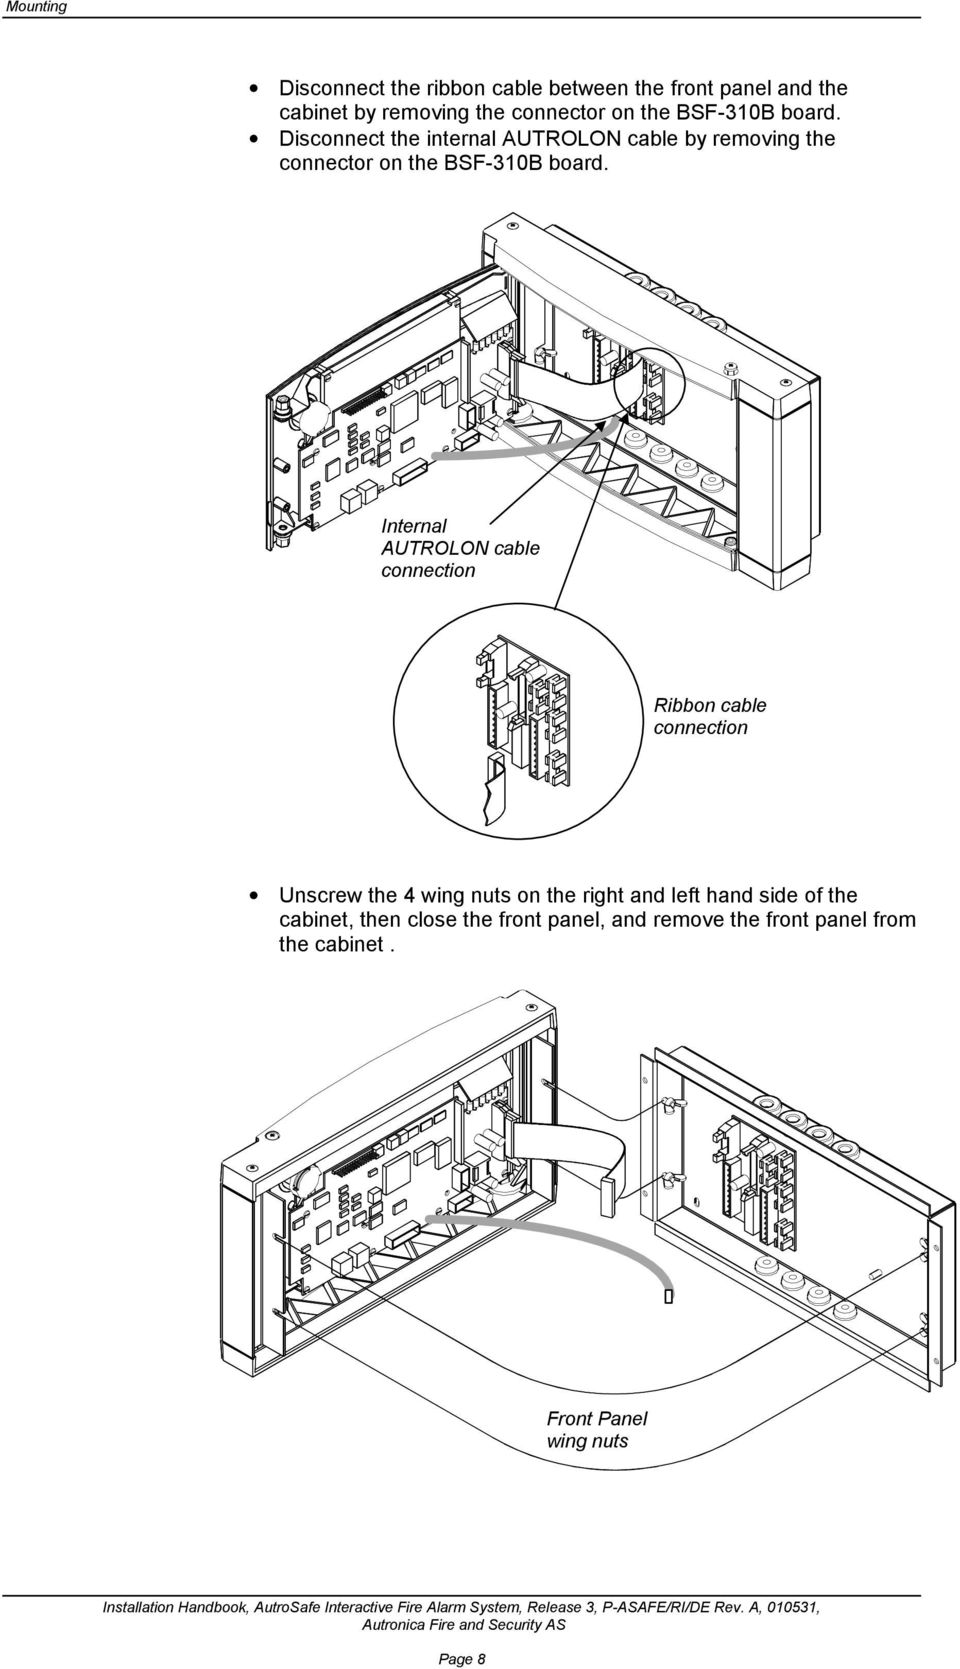 Installation Handbook Interactive Fire Alarm System Release 3 Cable Wiring Internal Autrolon Connection Ribbon Unscrew The 4 Wing Nuts On Right And